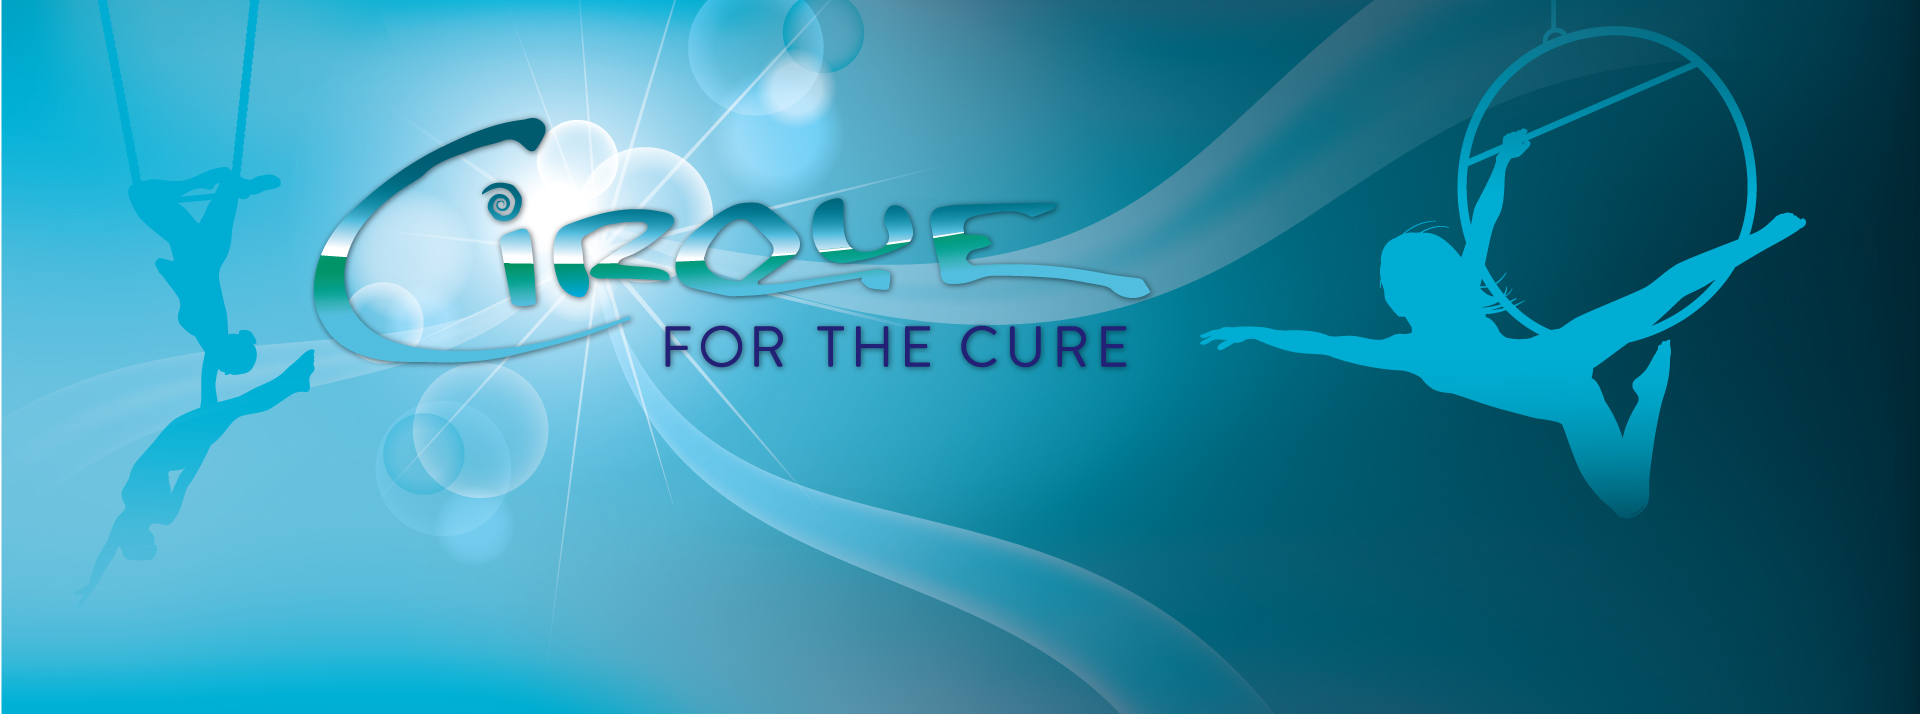 Cirque for the Cure